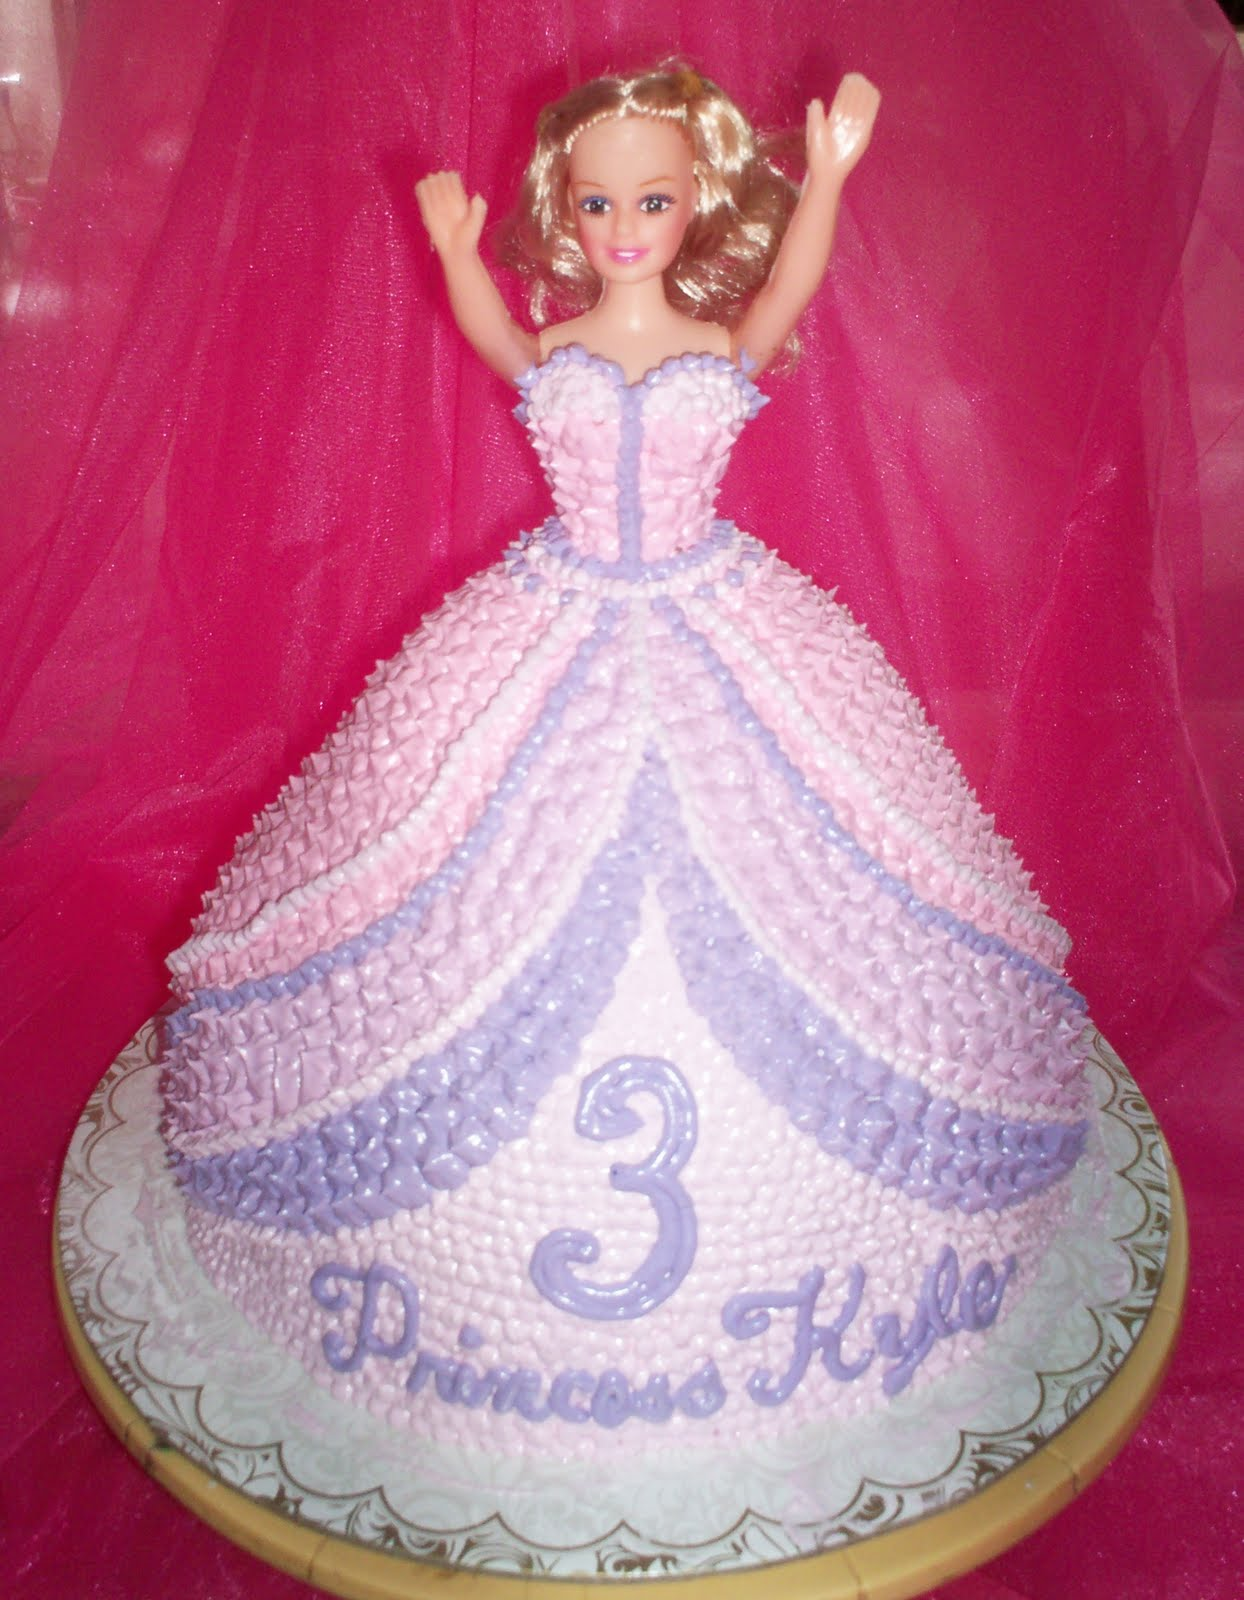 Images Of A Barbie Cake : PaupiCakes: Barbie Cake